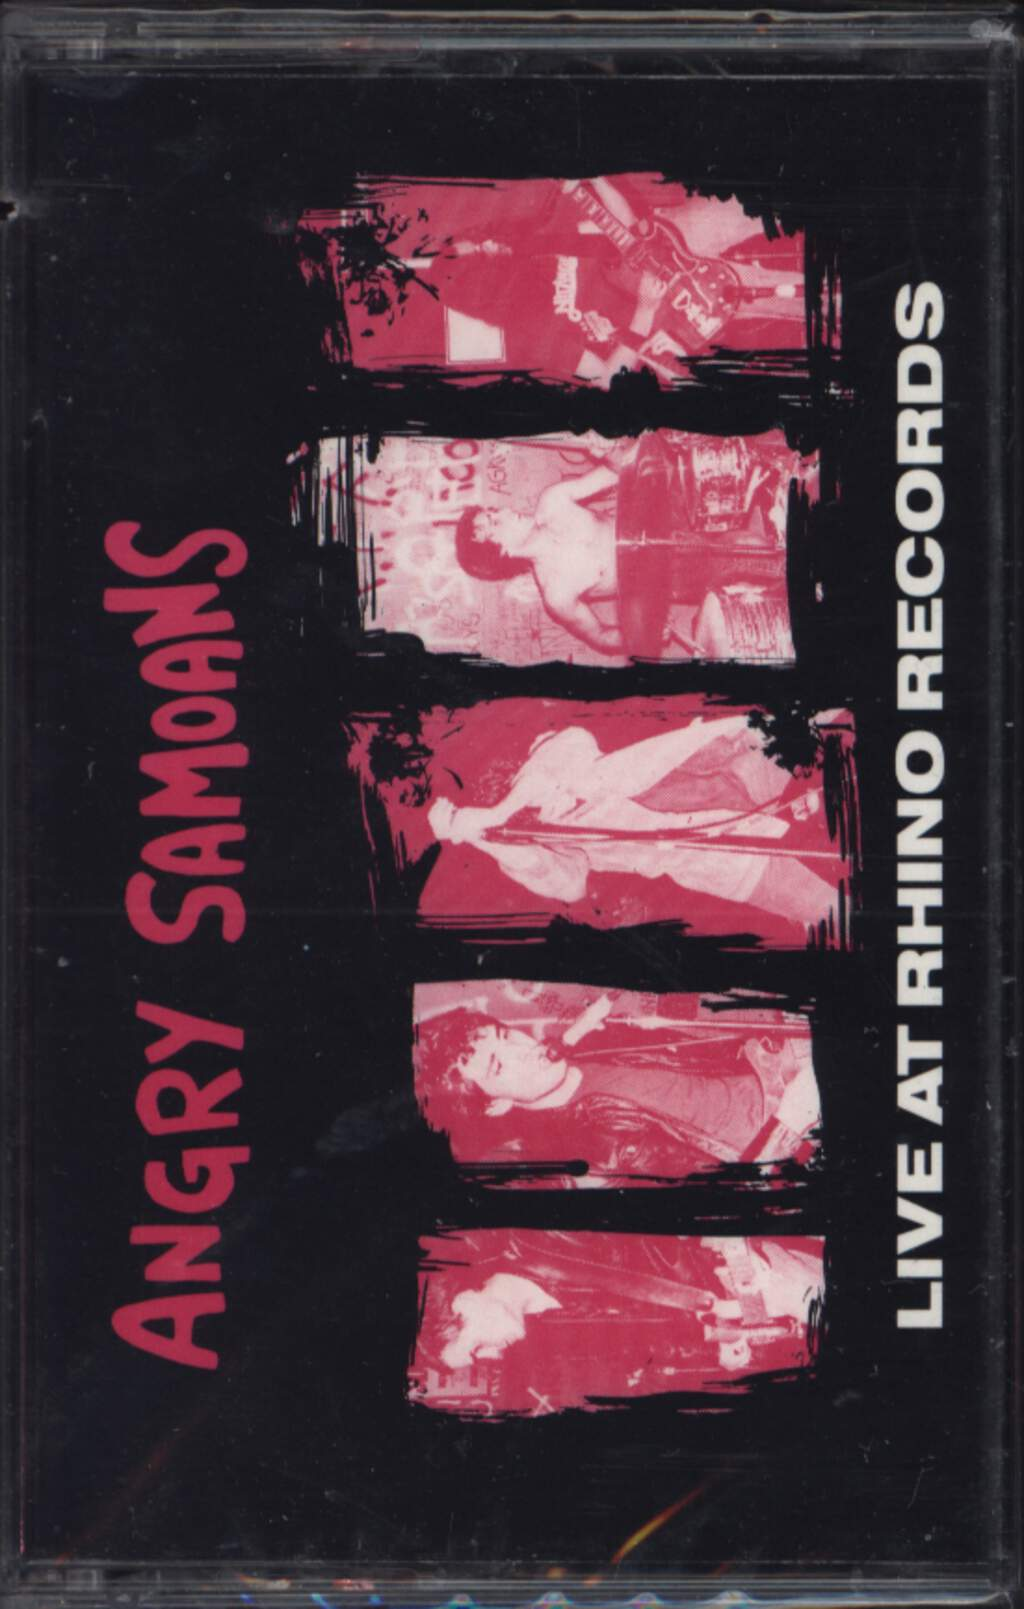 Angry Samoans: Live At Rhino Records, Tape